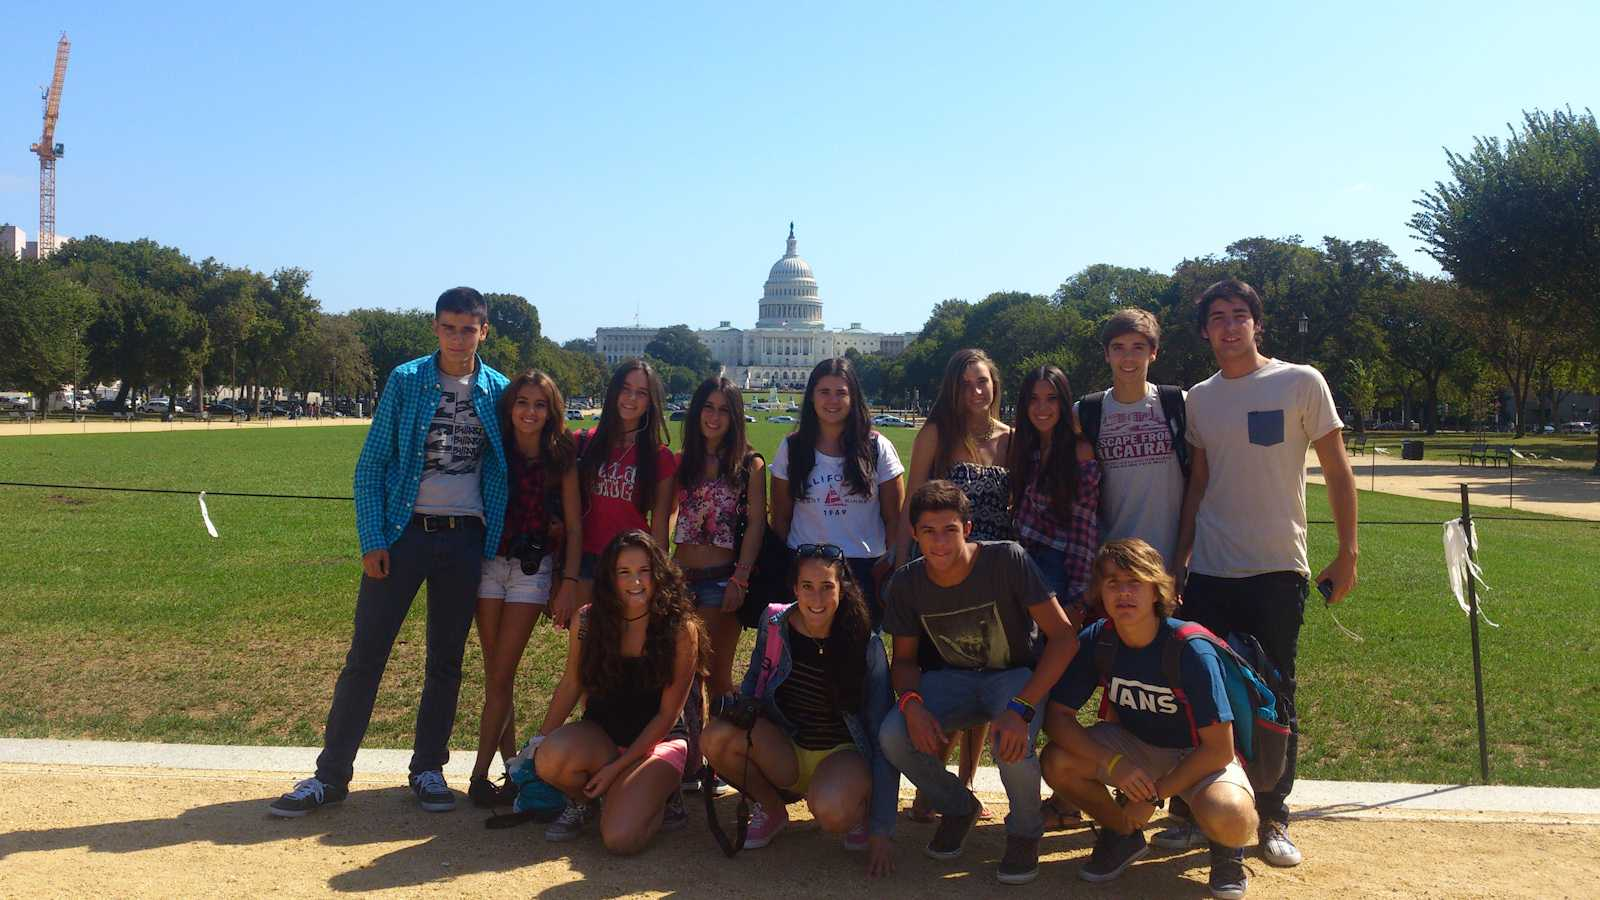 Photo courtesy of Nagore Portillo. The visiting students from Bilbao toured the monuments in Washington, D.C.